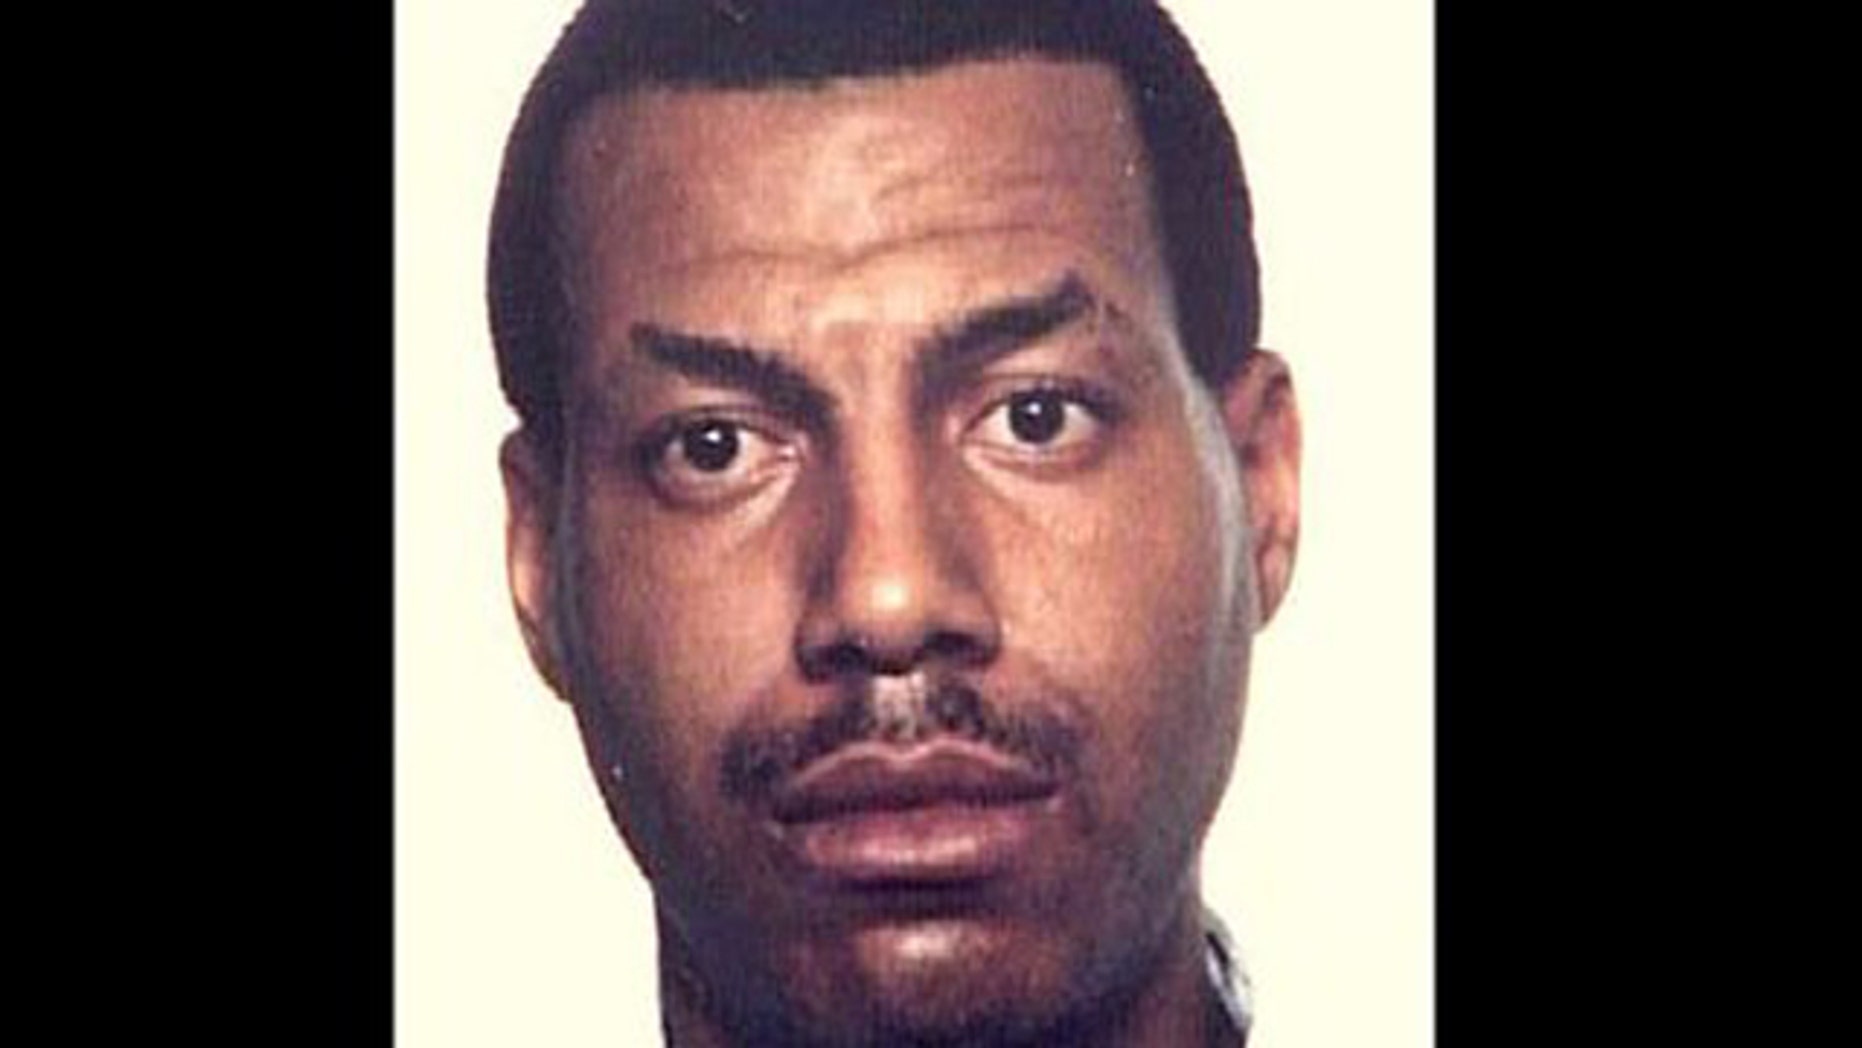 Vincent Groves is seen in an undated photo provided by the Denver District Attorney's Office.